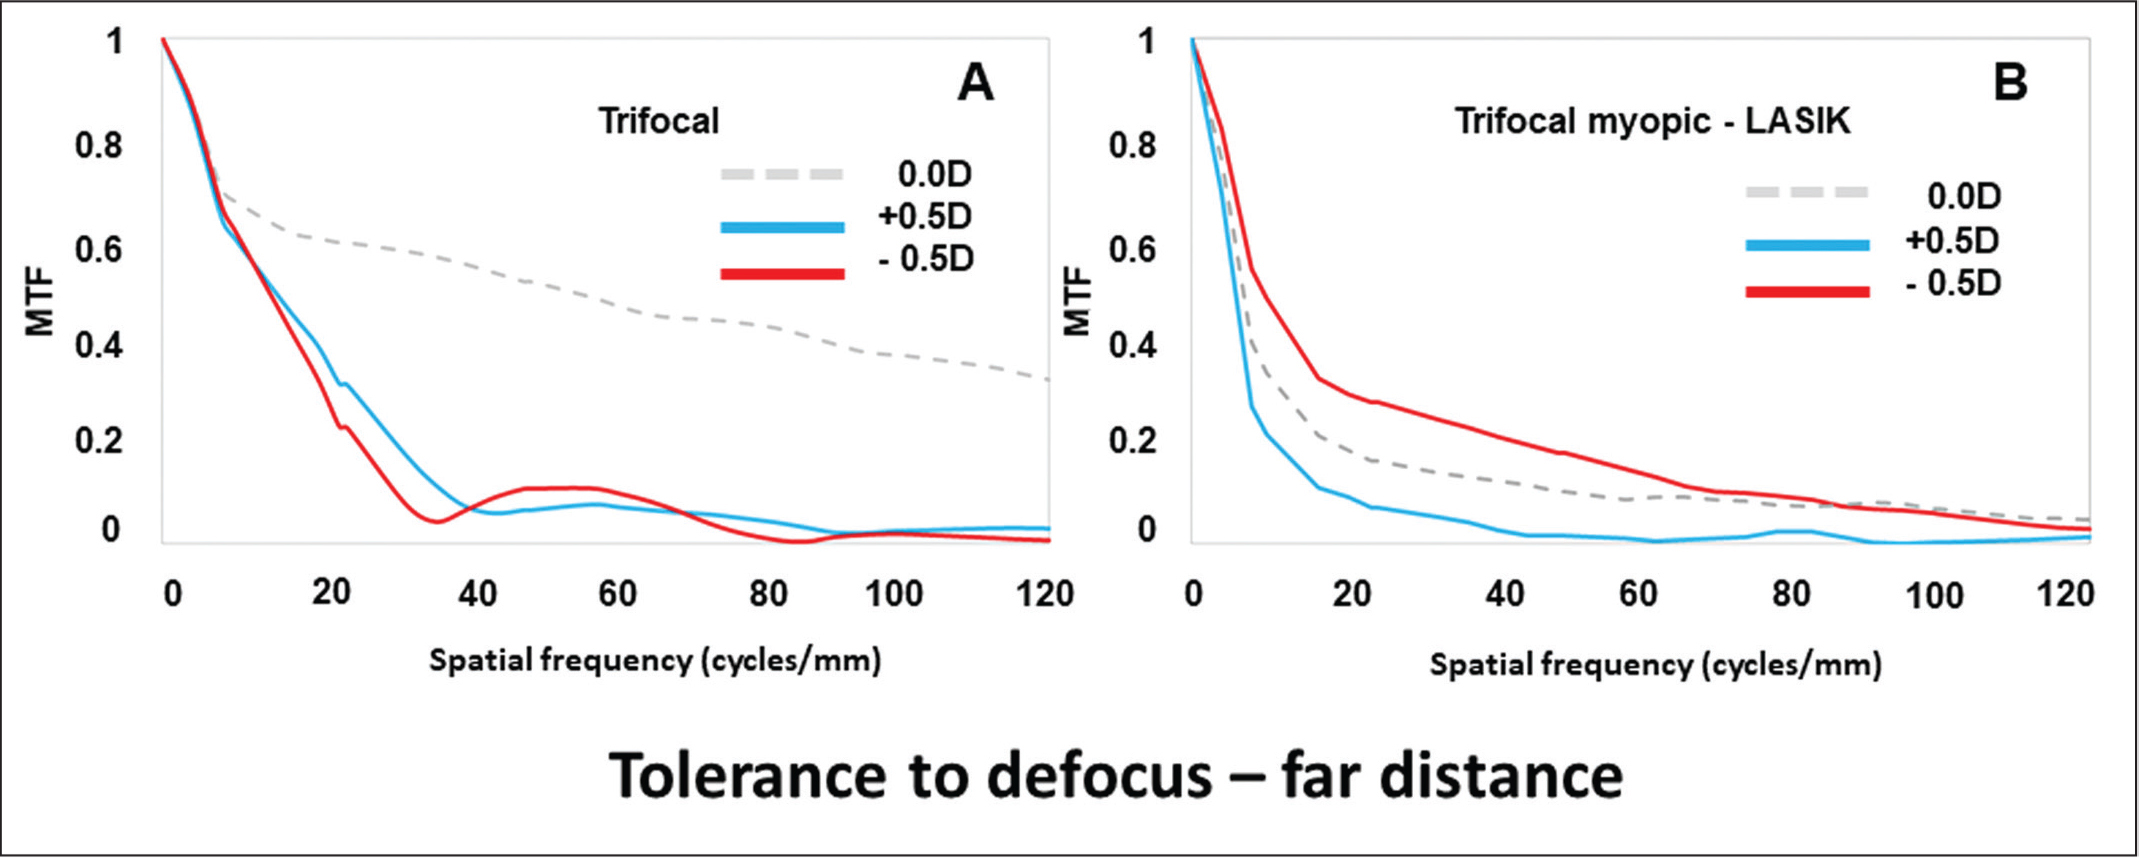 Modulation transfer function (MTF) curves for the 0.00, +0.50, and −0.50 diopters (D) focal points for the (A) trifocal intraocular lens and (B) trifocal intraocular lens with the positive increment of spherical aberration that simulates previous myopic laser in situ keratomileusis (LASIK).